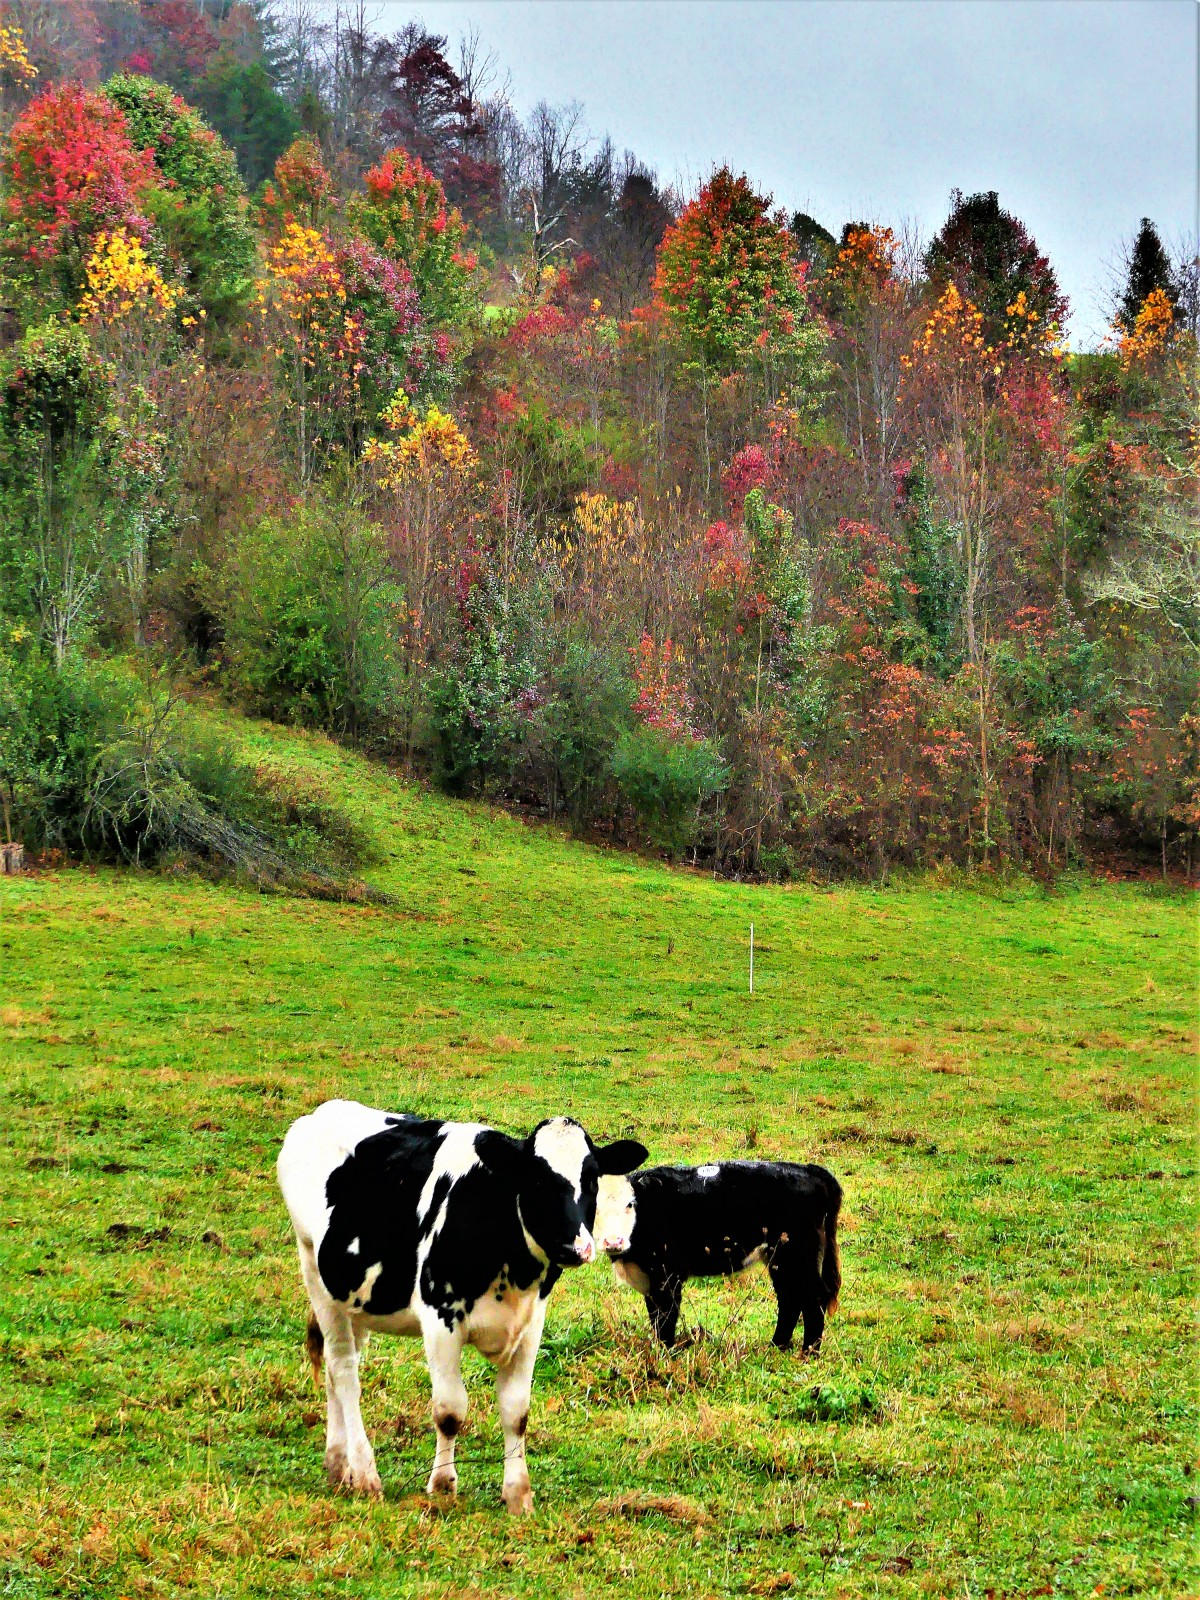 Smoky Mountain cows